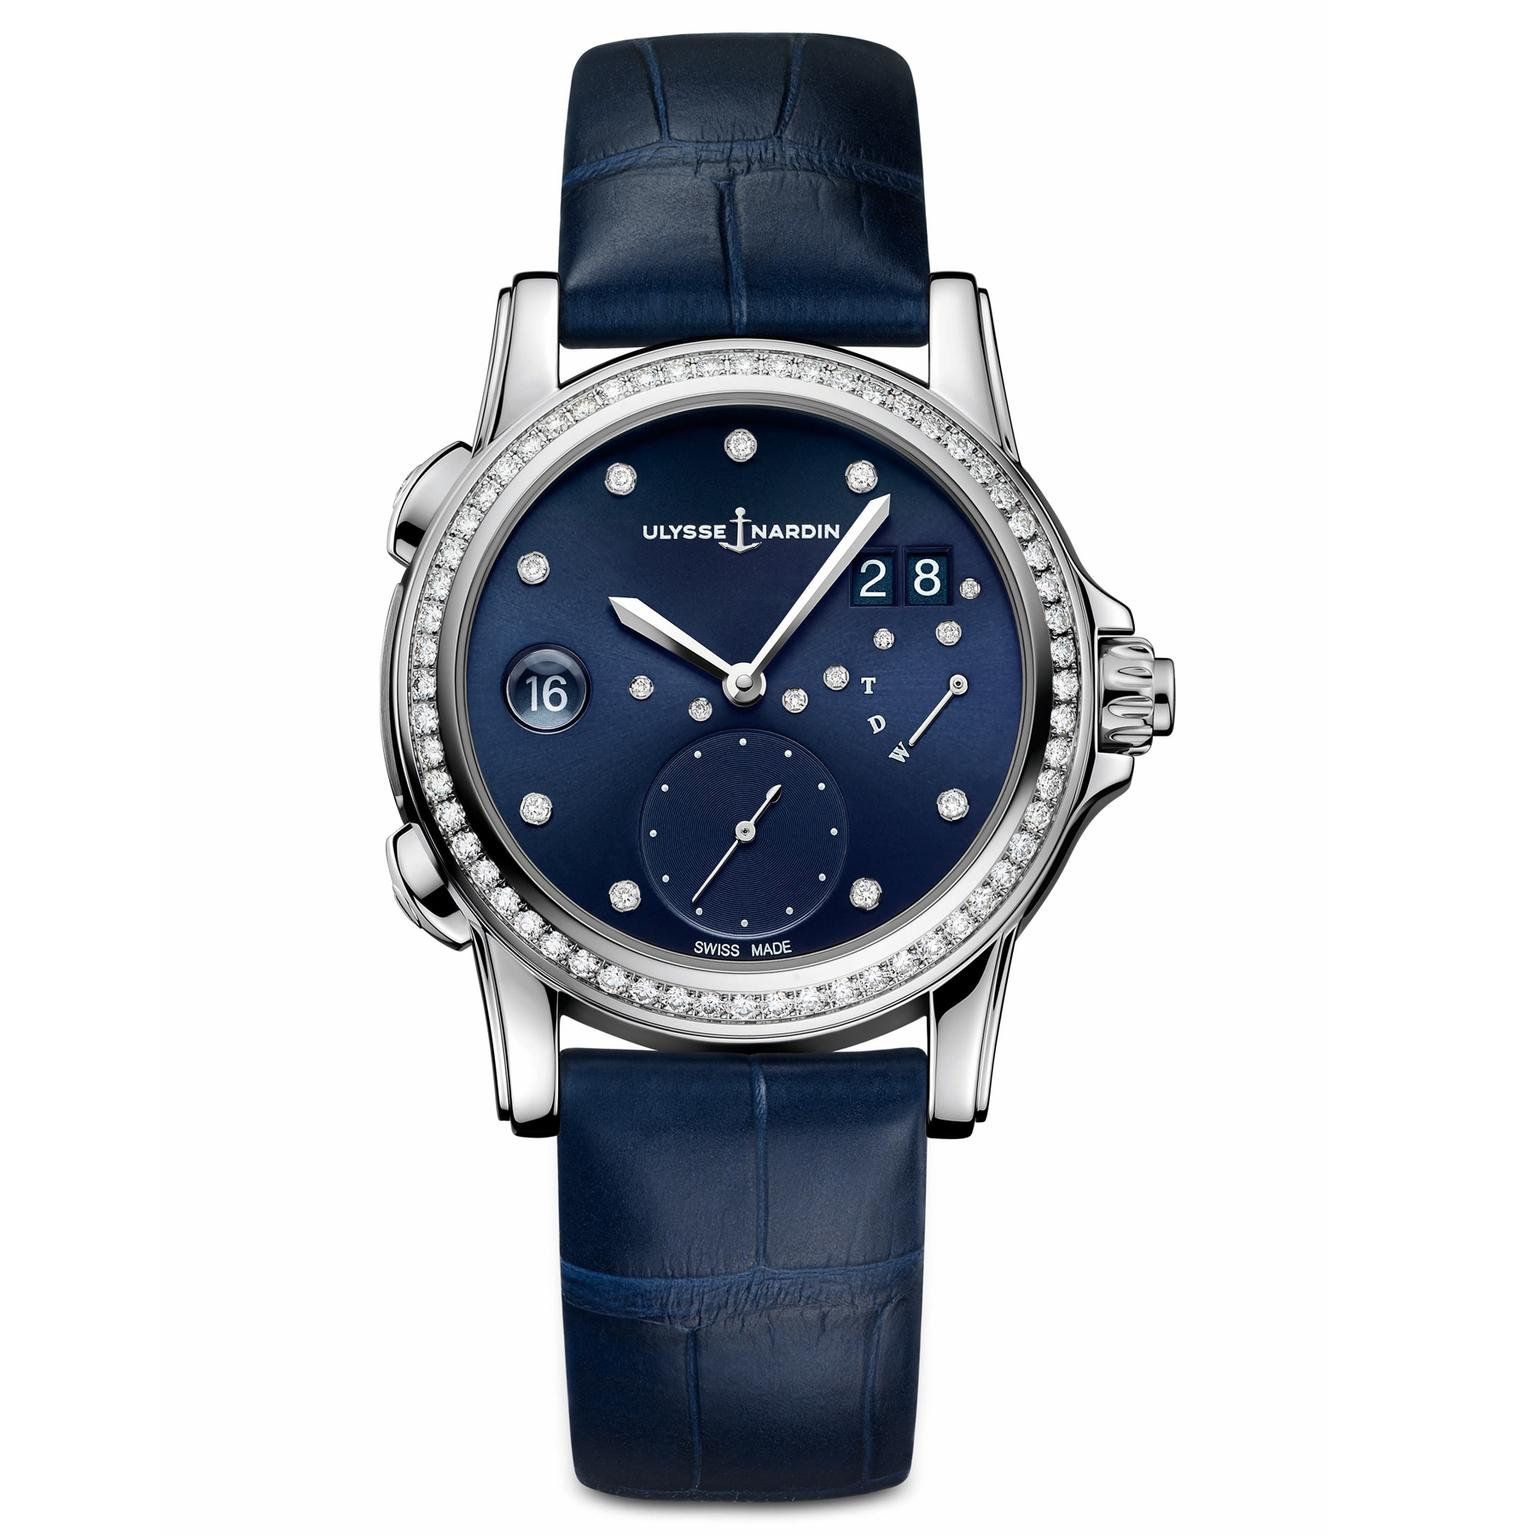 Ulysse Nardin Classic Lady Dual Time watch navy dial